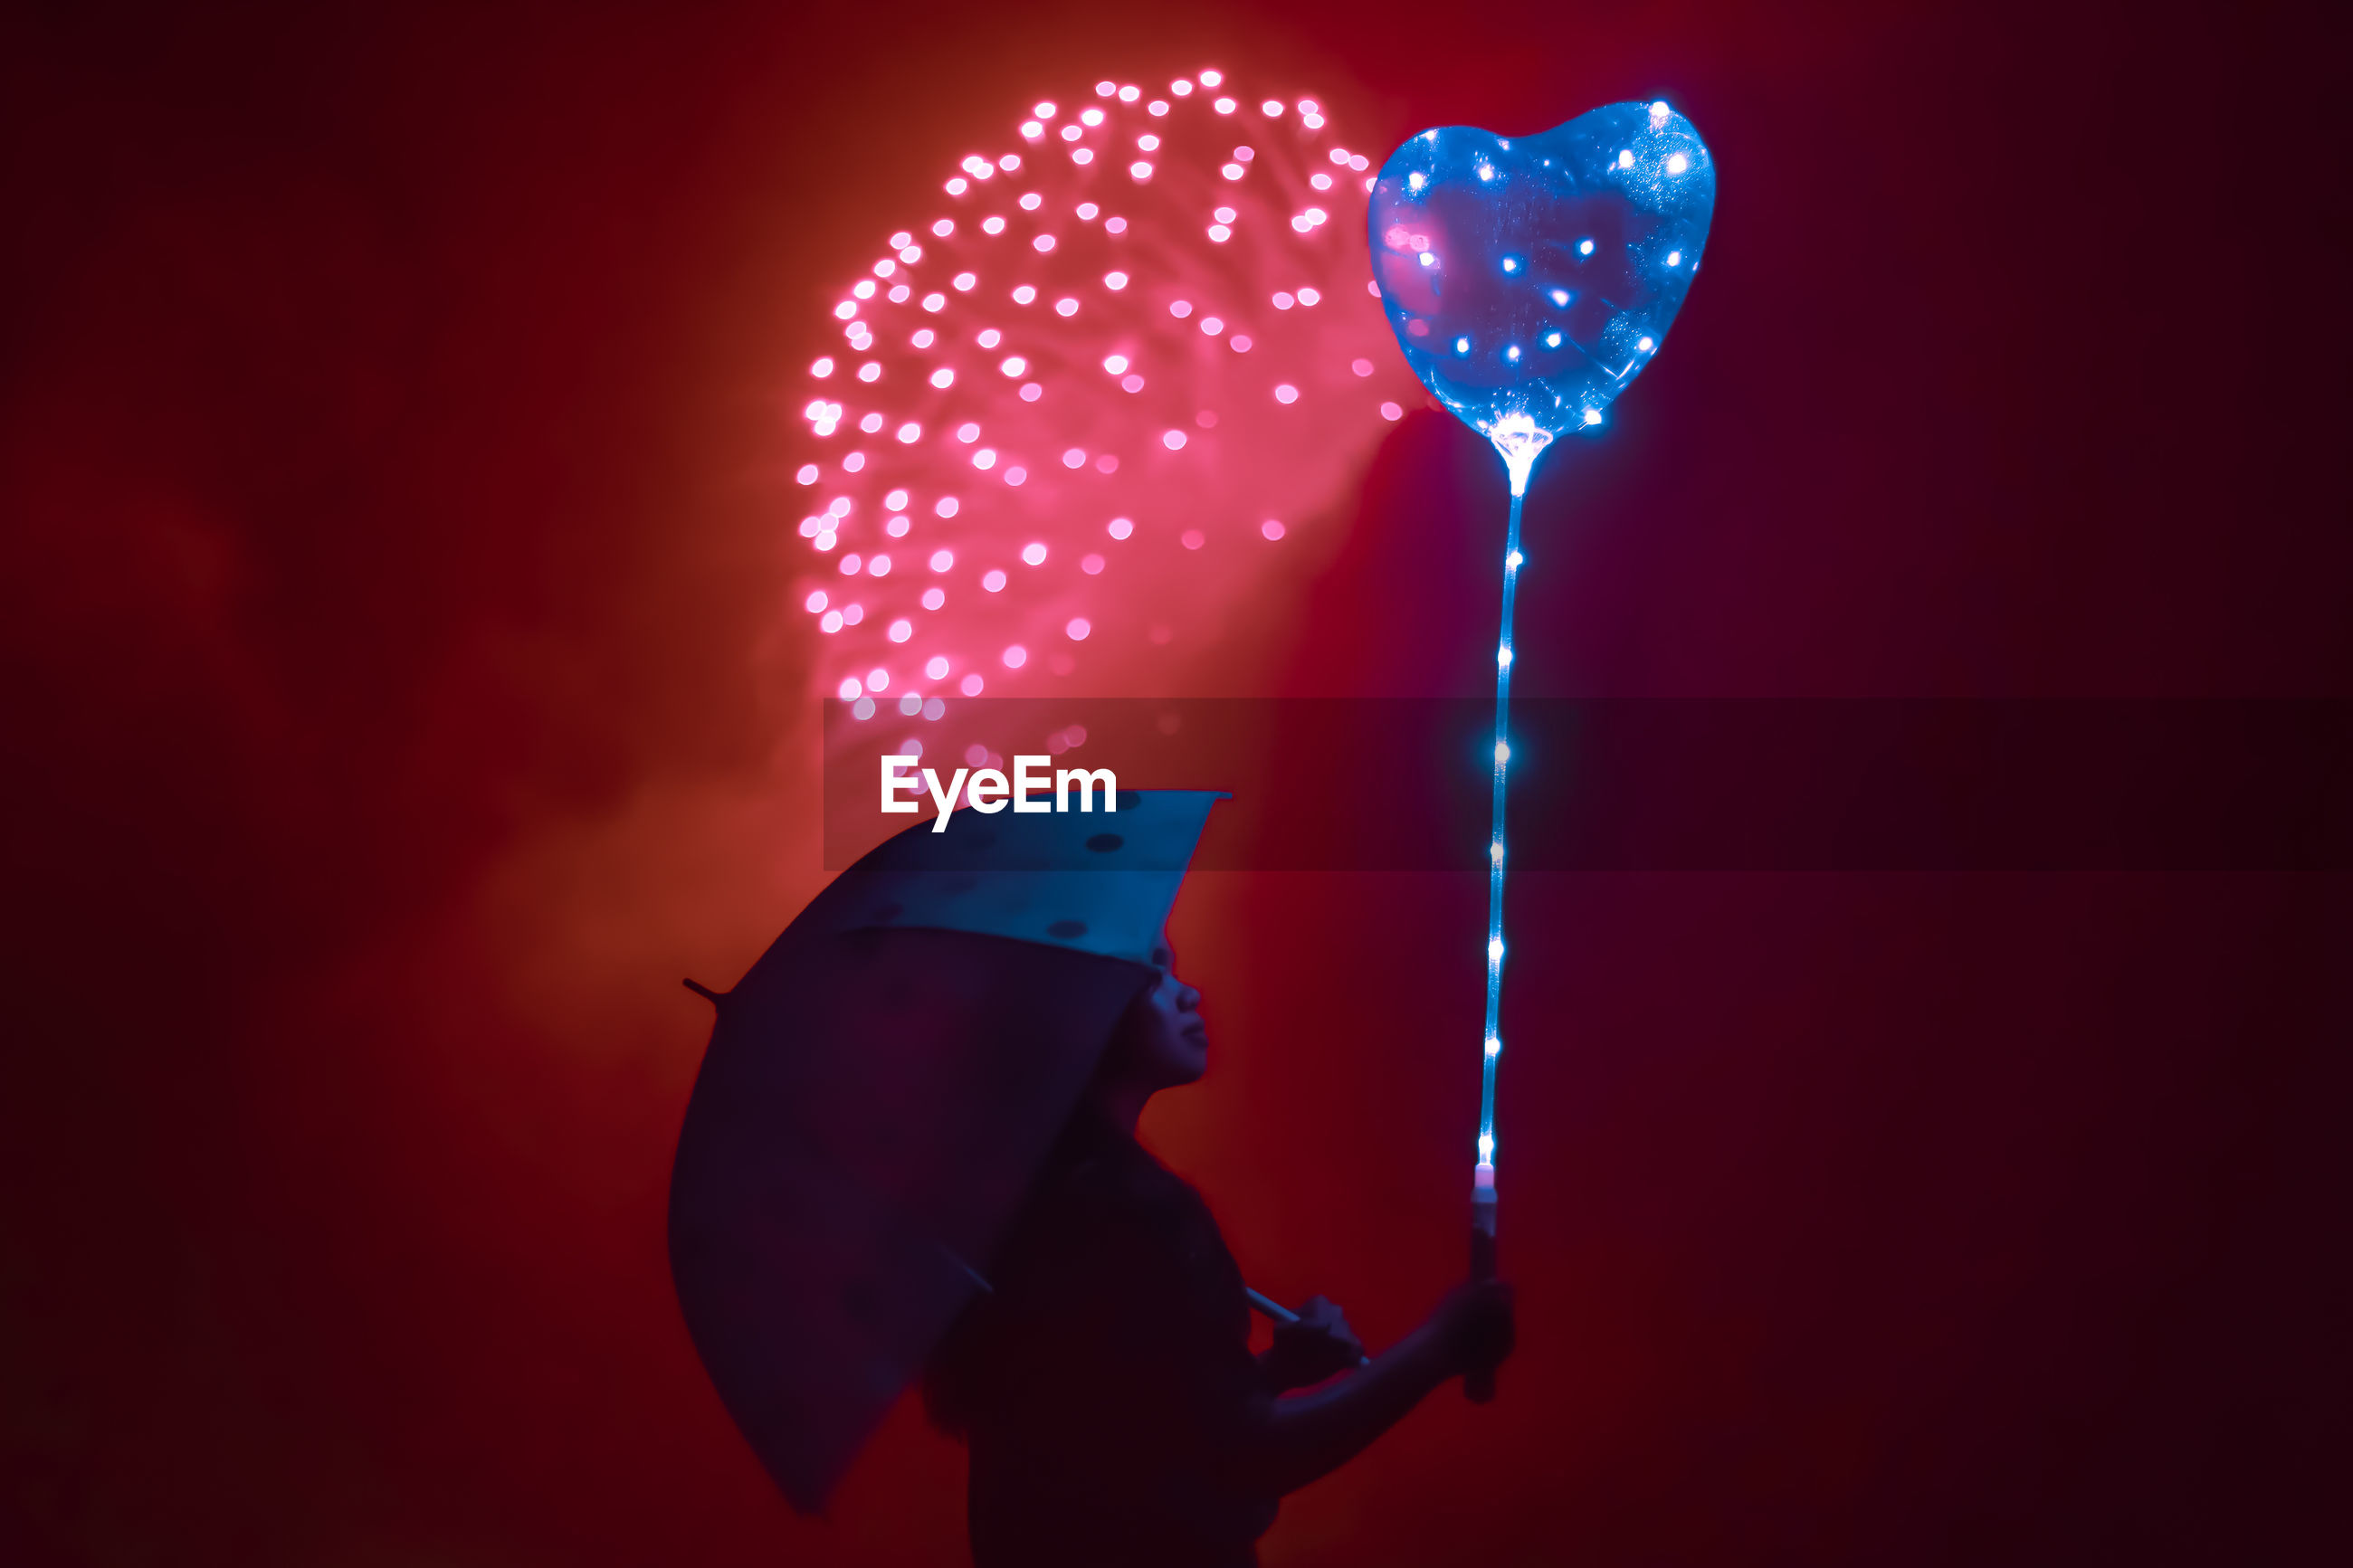 Woman holding umbrella and illuminated balloon while standing outdoors